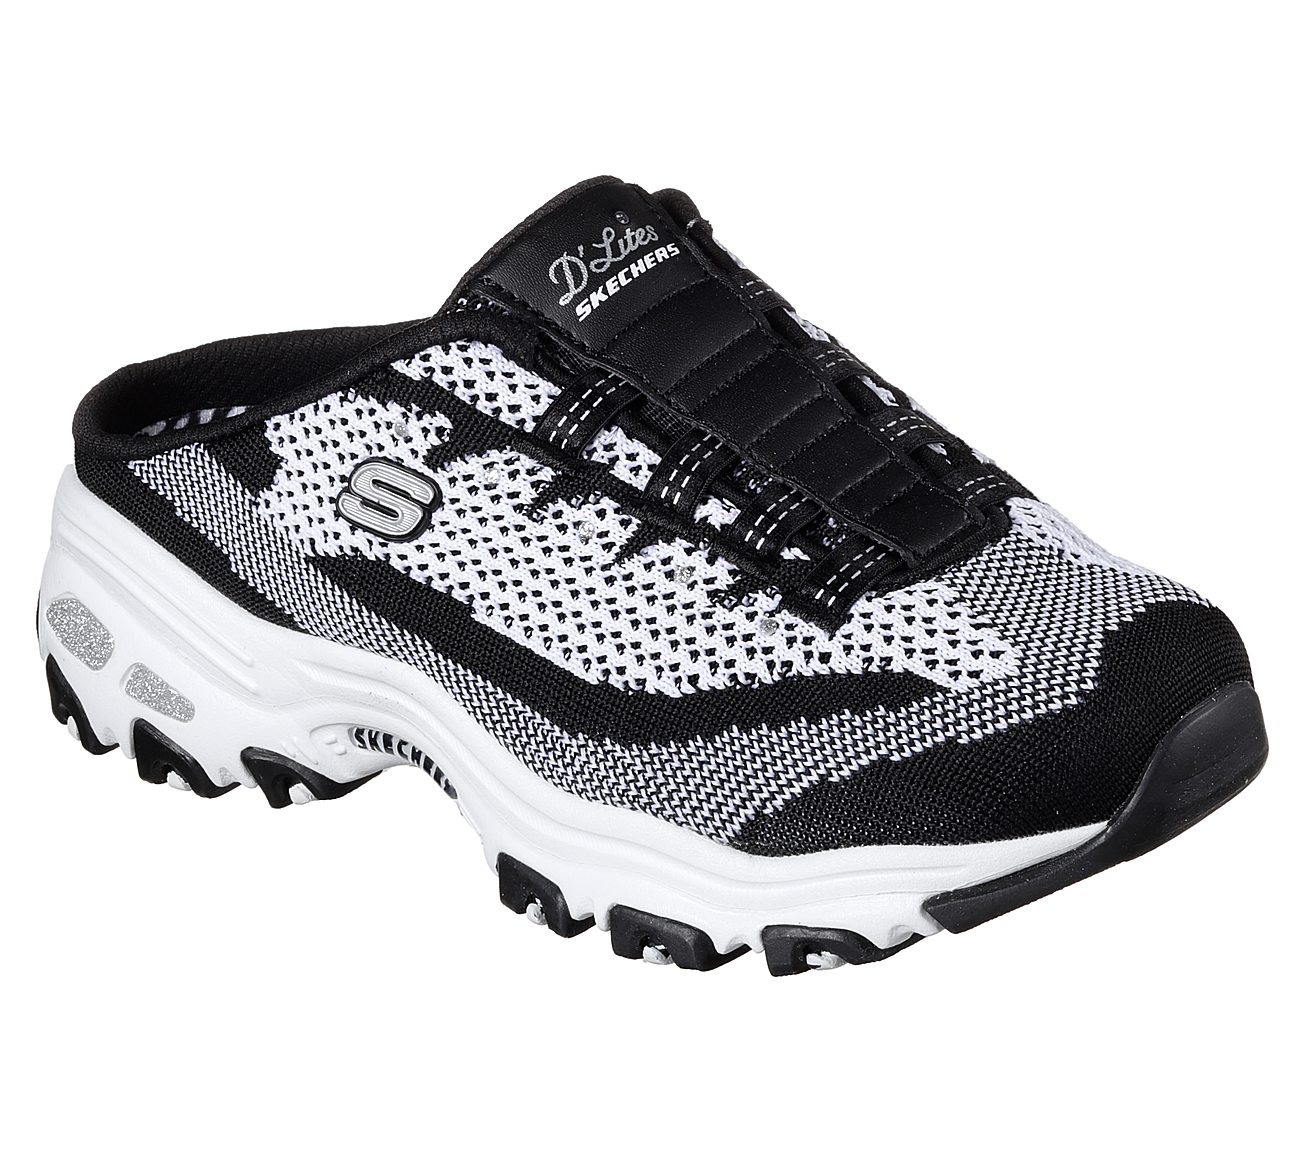 skechers d'lites black